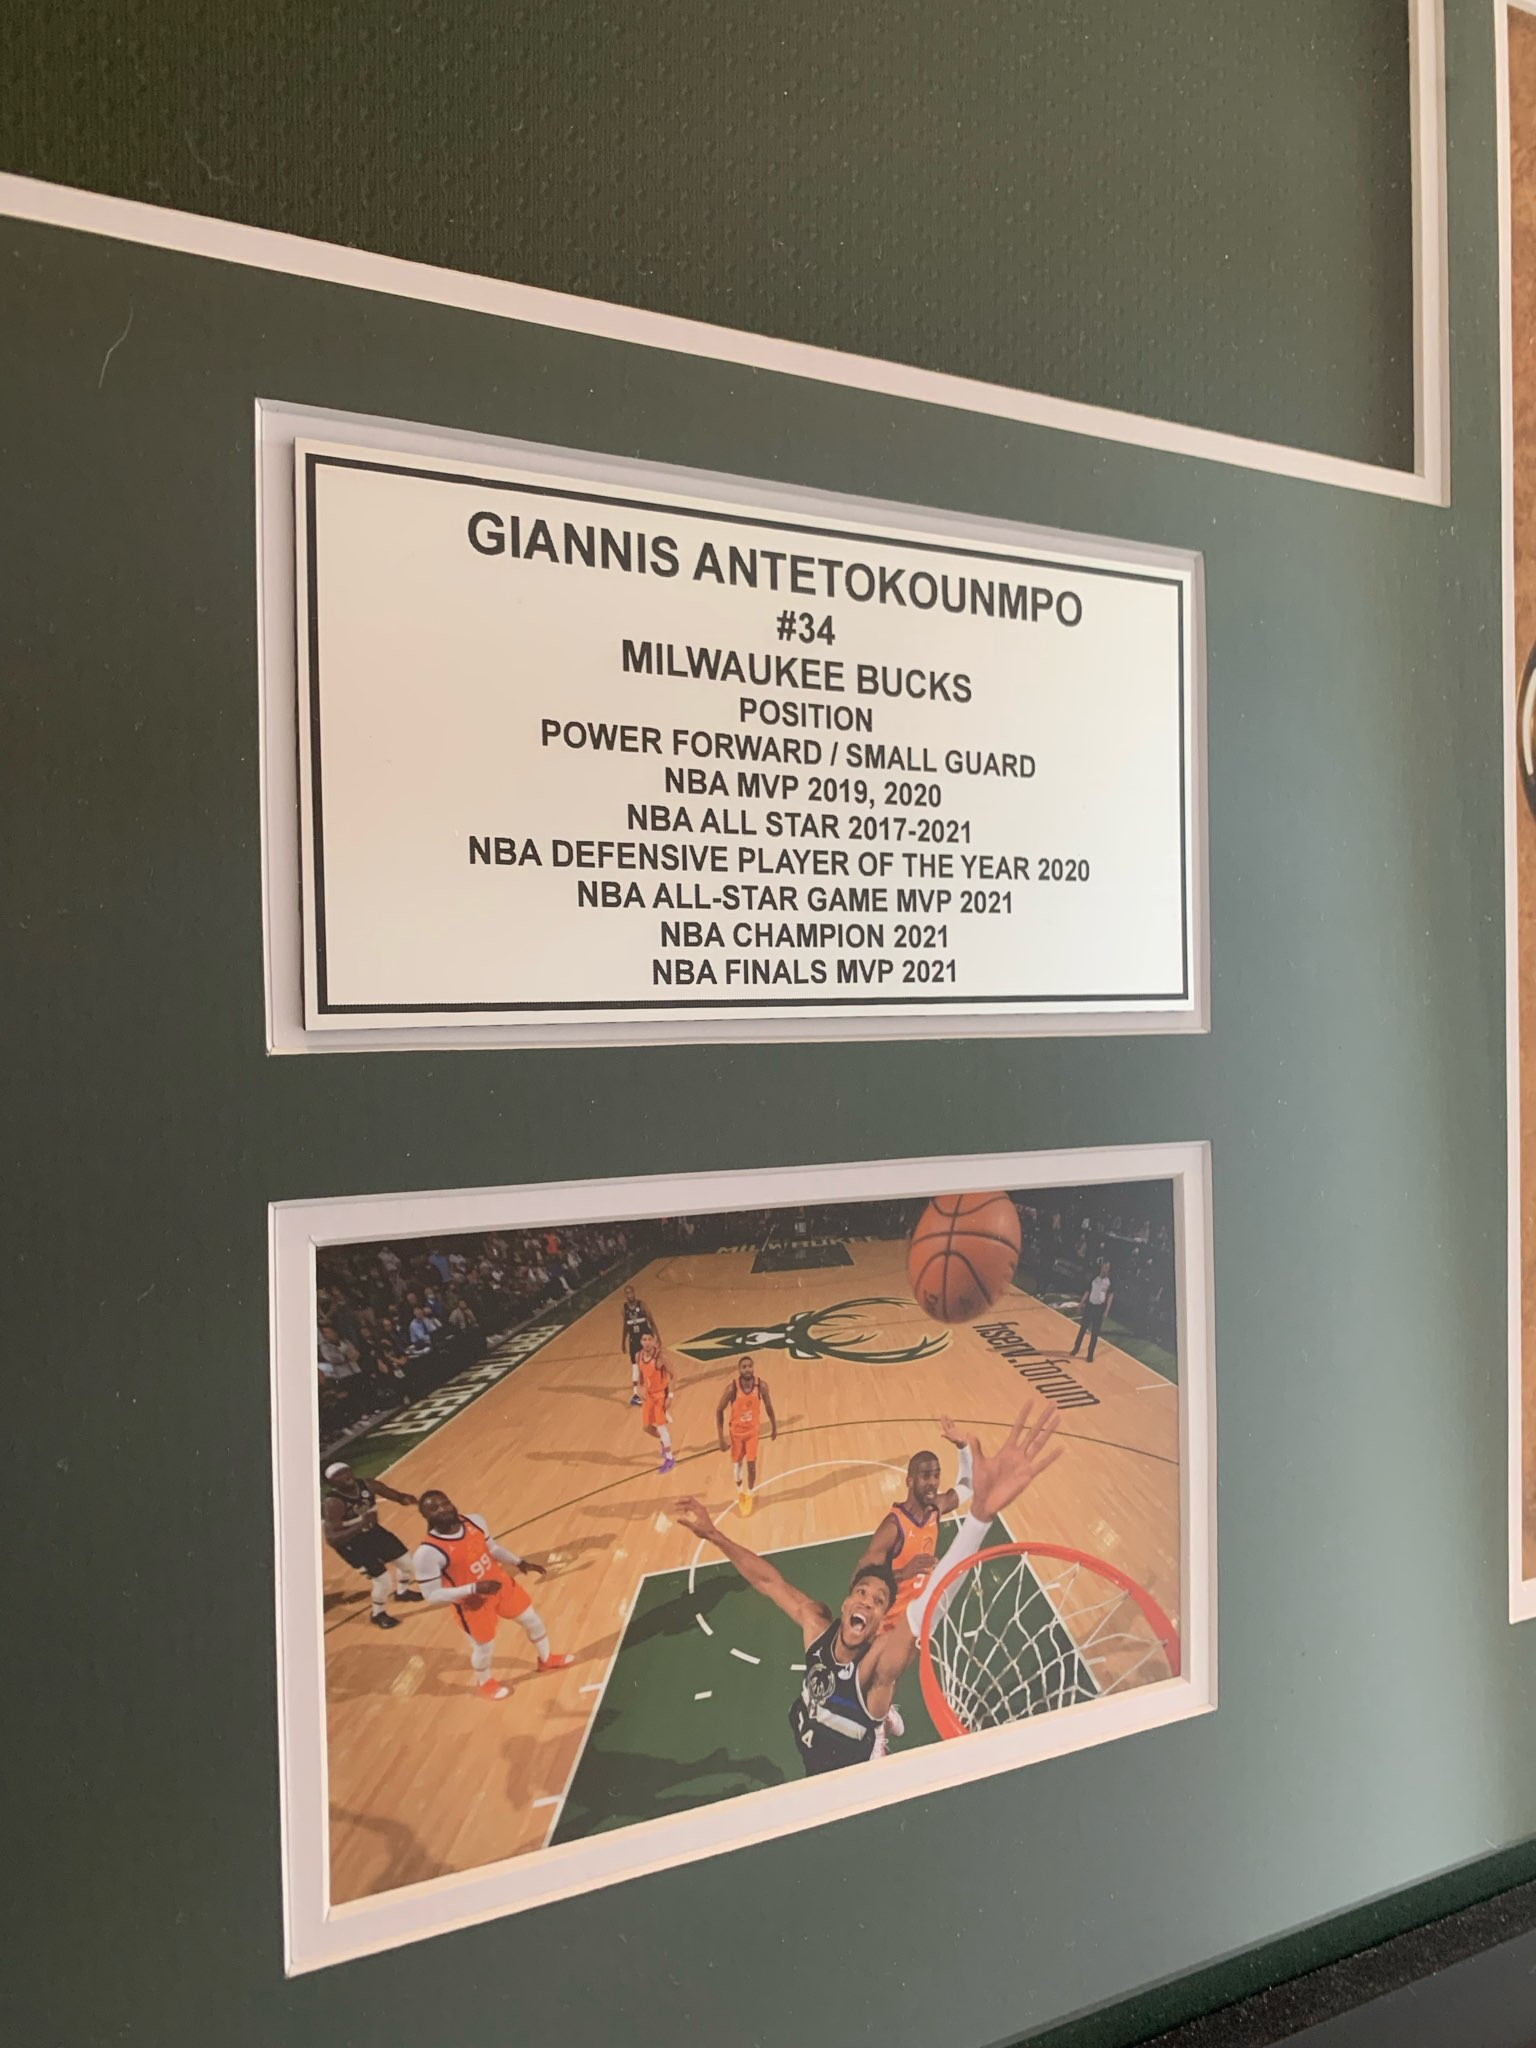 Signed Giannis Antetokounmpo Jersey